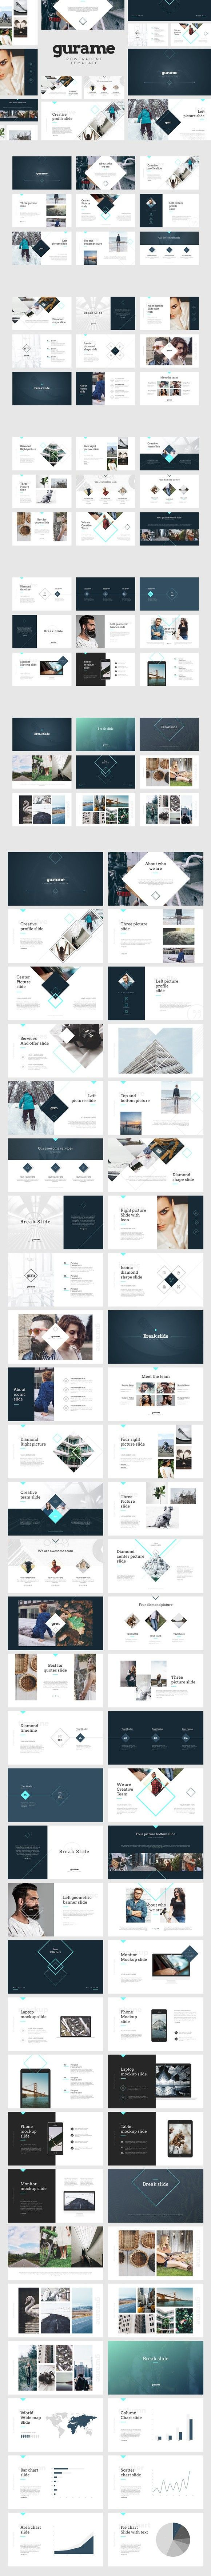 2322 best design art images on pinterest templates fonts and gurame ppt template 50 off toneelgroepblik Image collections